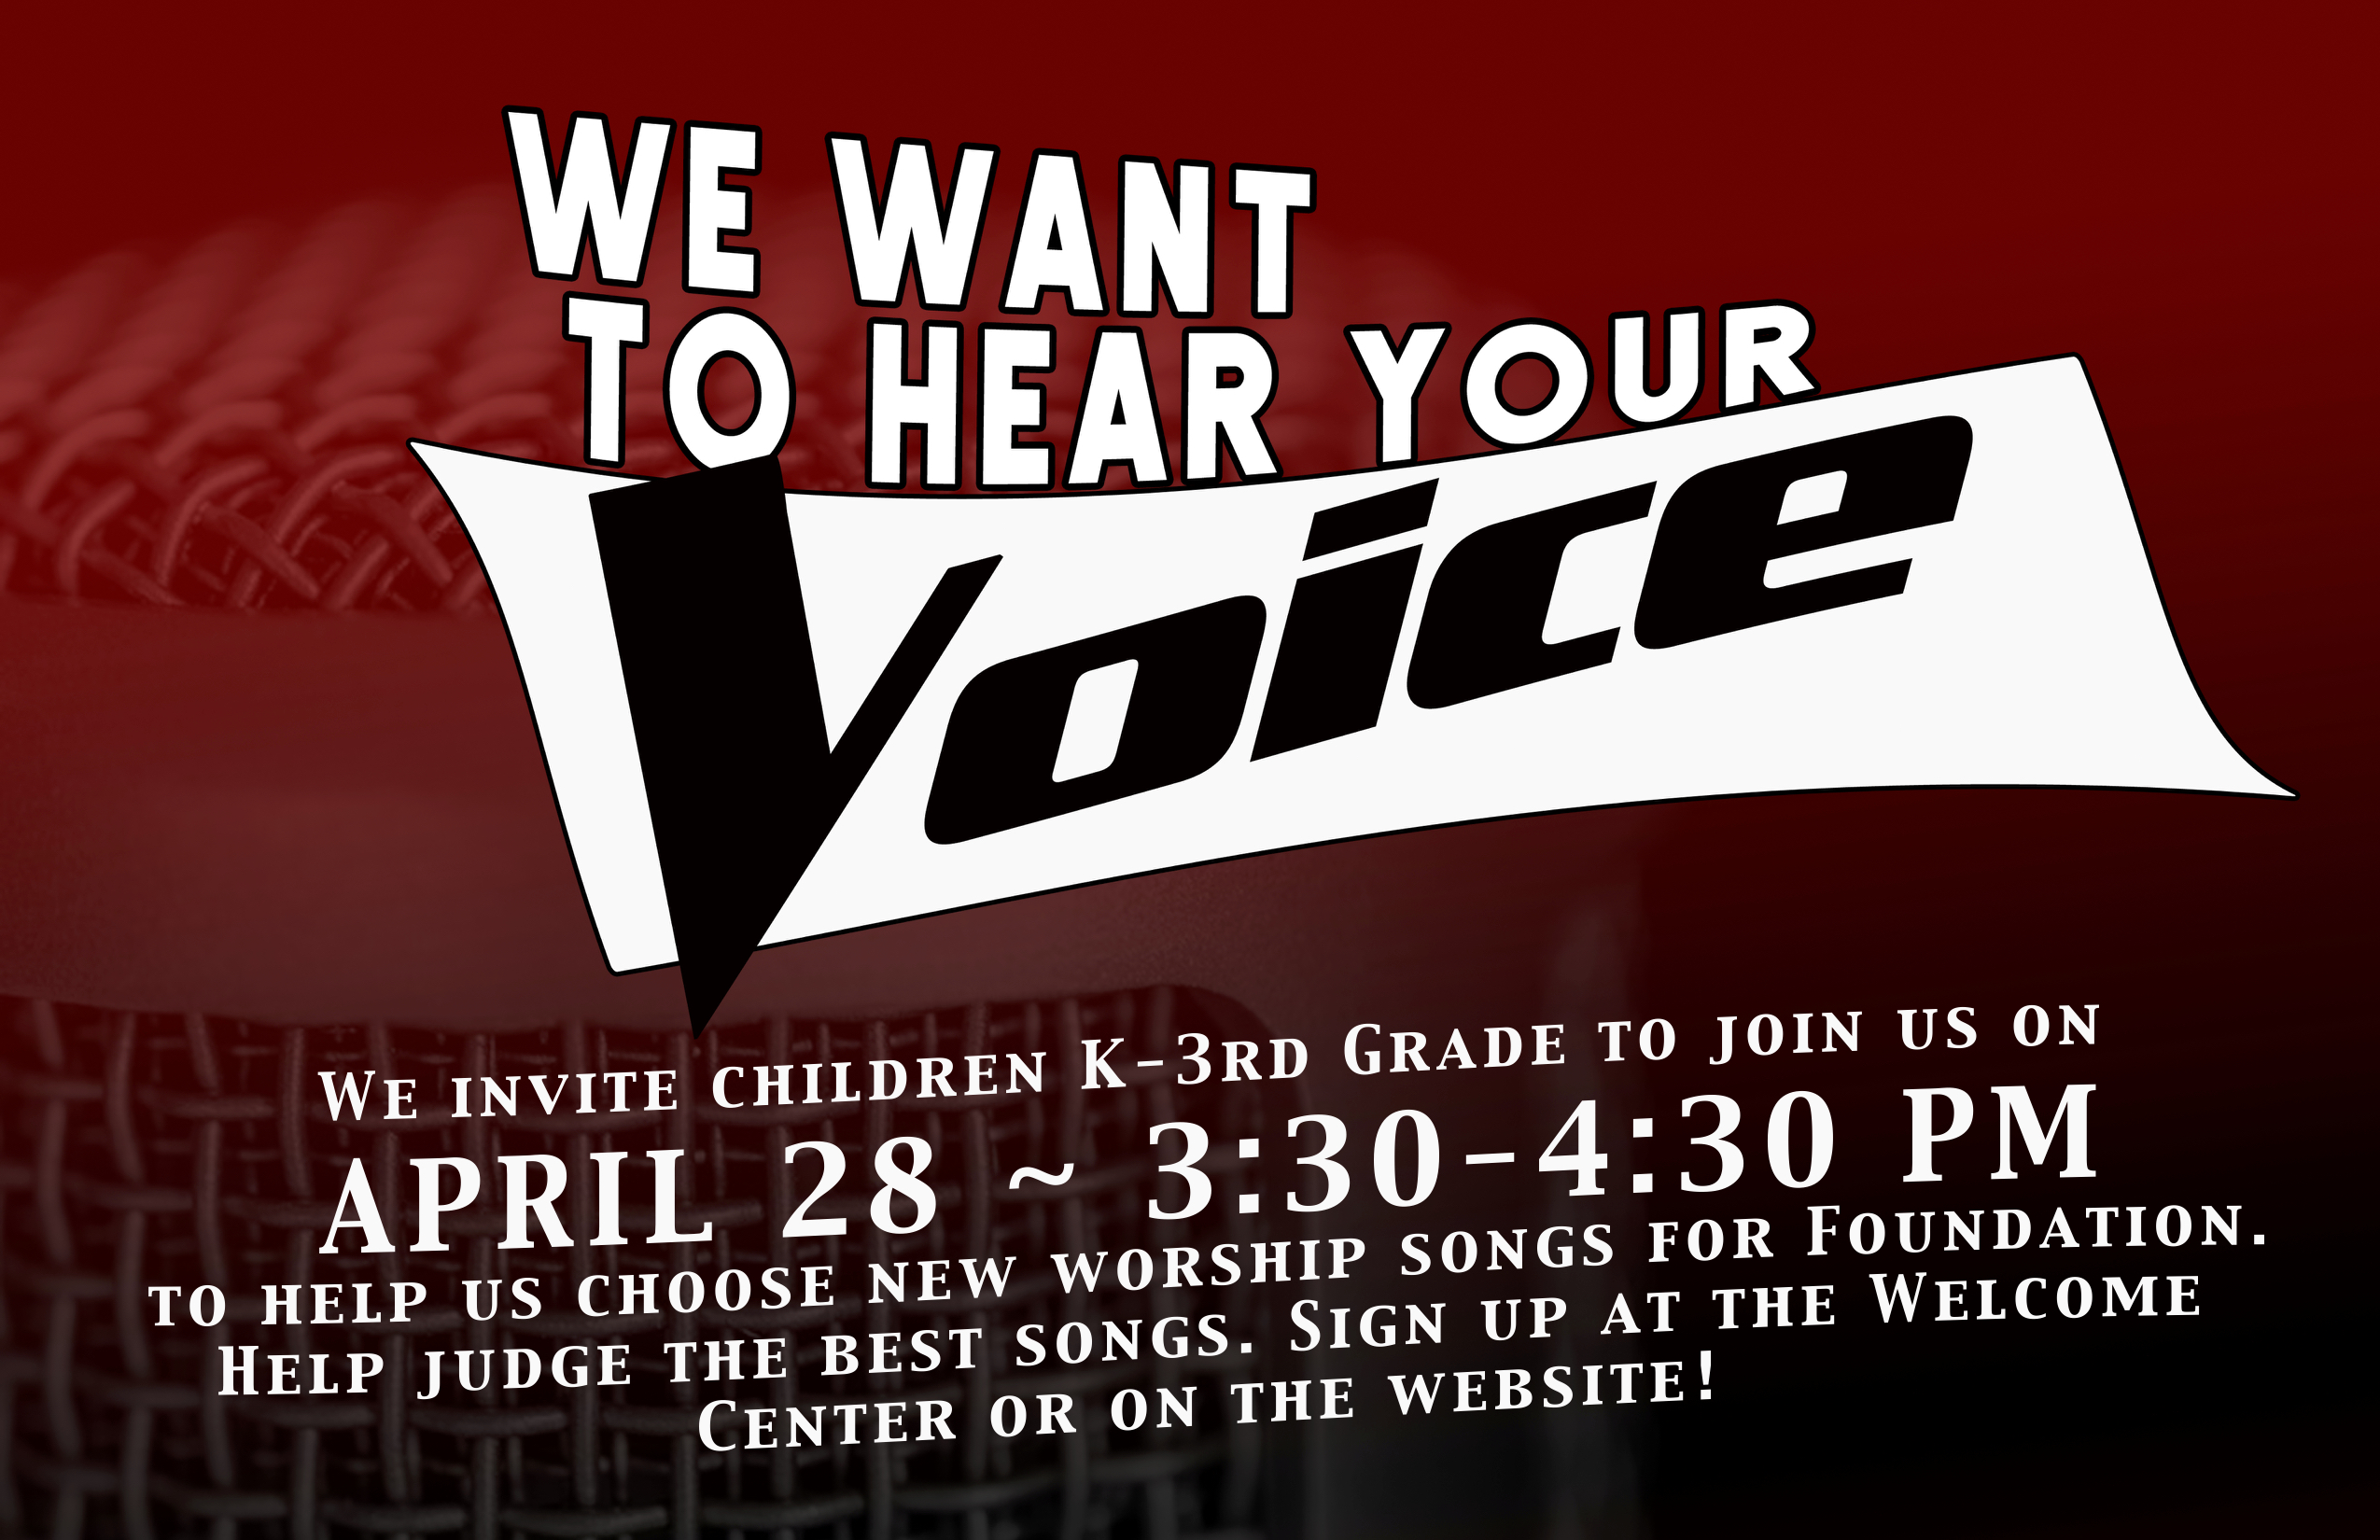 We want to hear your voice